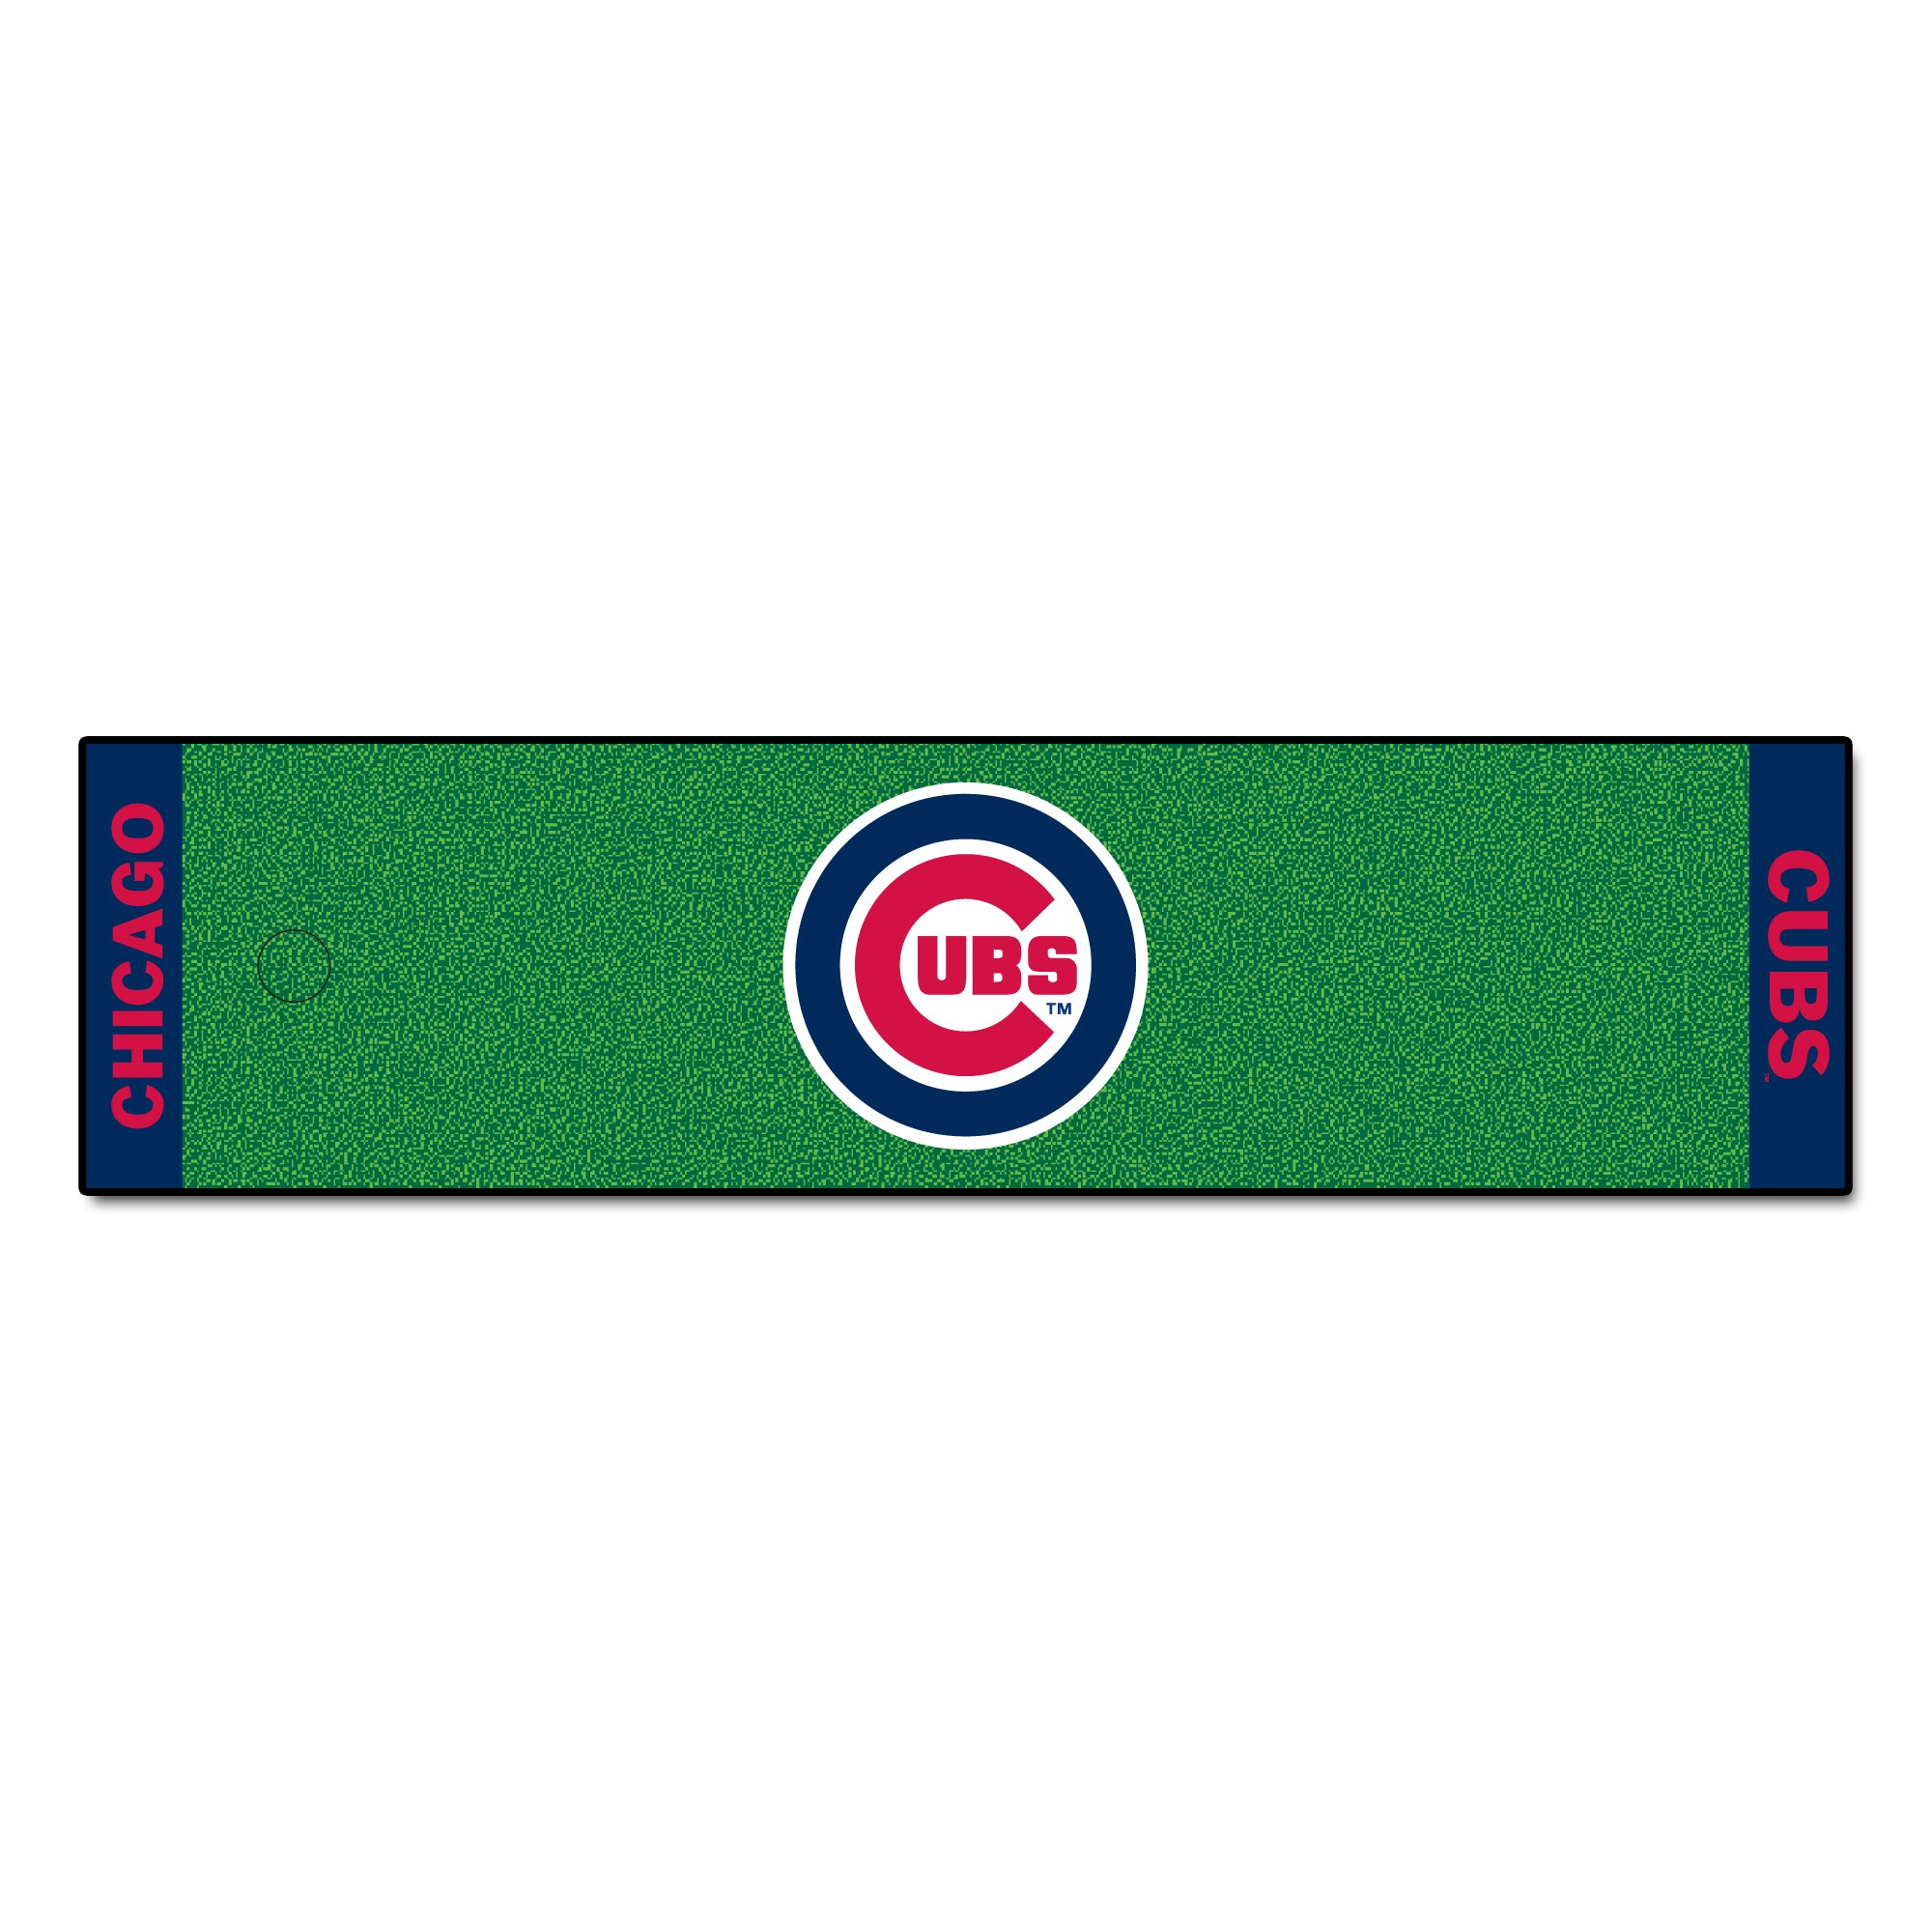 Fanmats MLB Chicago Cubs Nylon Face Putting Green Mat